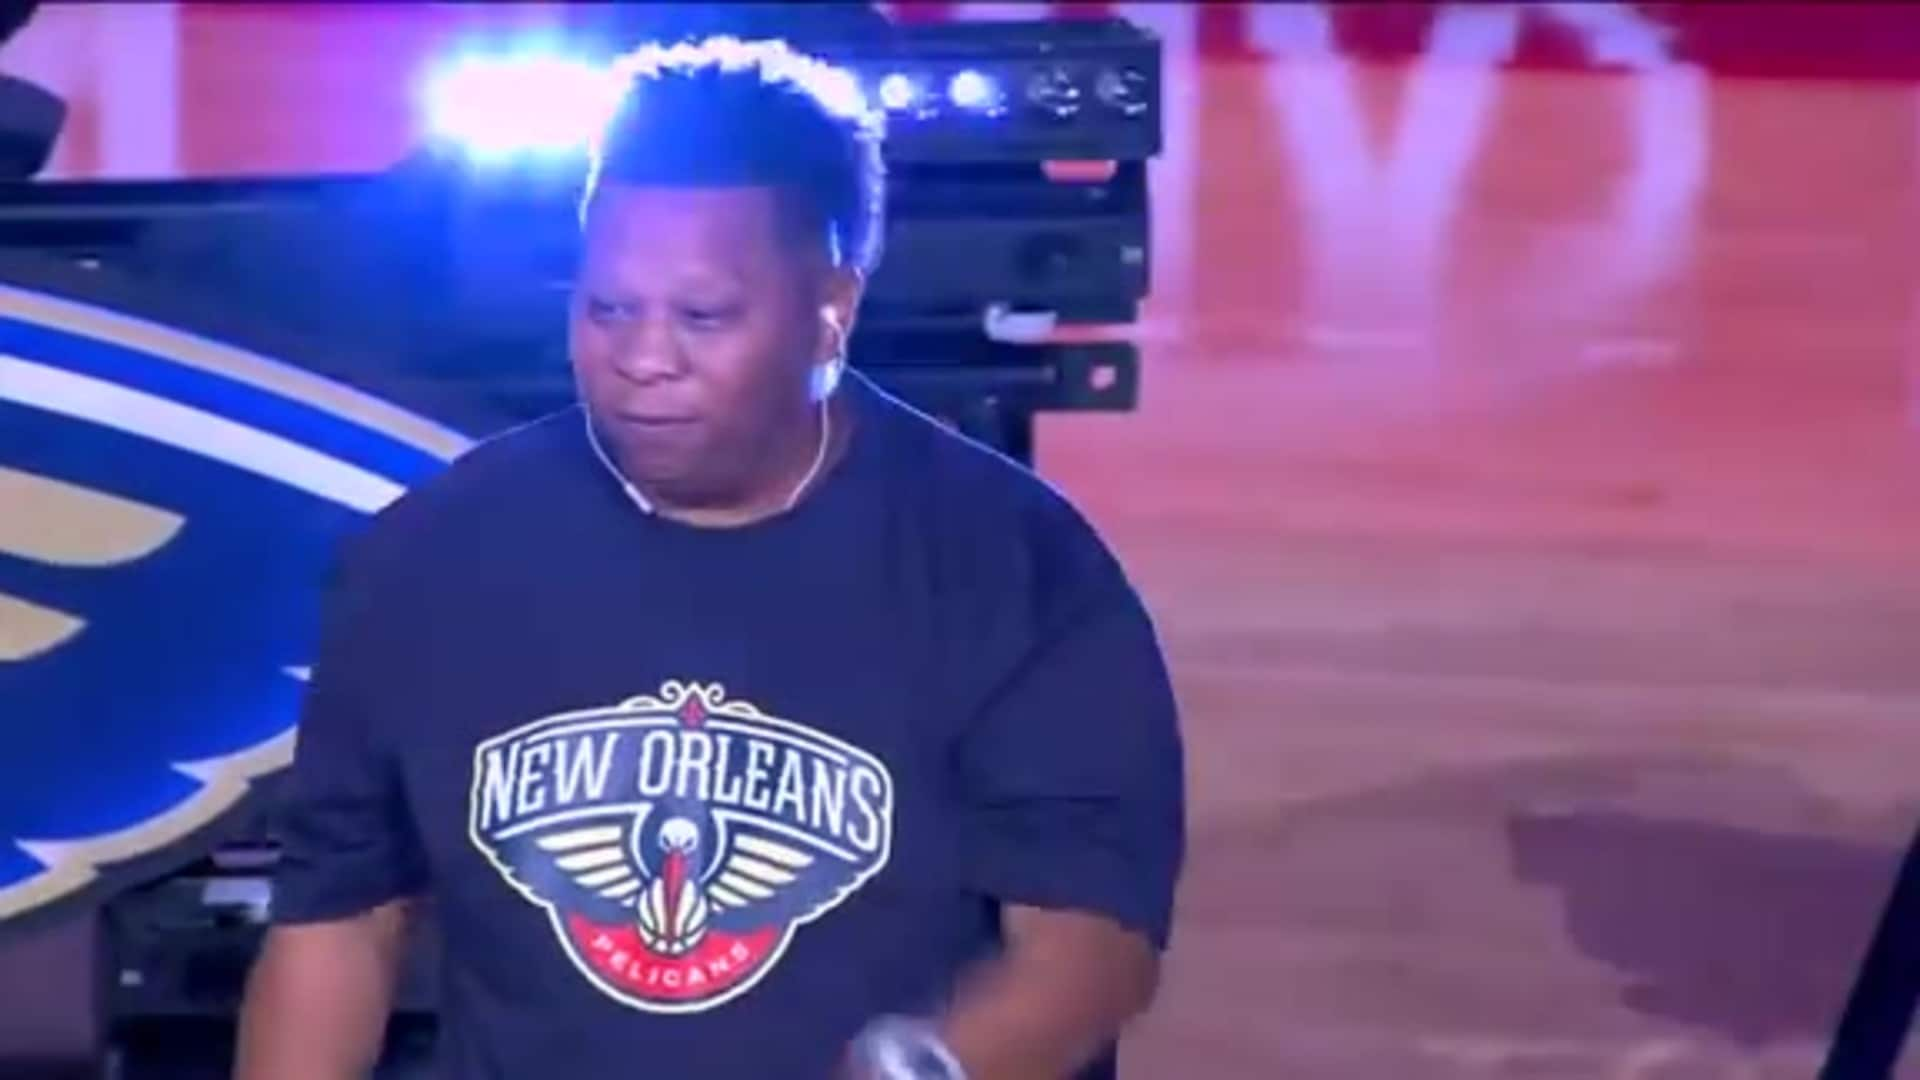 Pelicans Halftime: Mannie Fresh and 5th Ward Weebie - October 25, 2019 vs. Mavericks